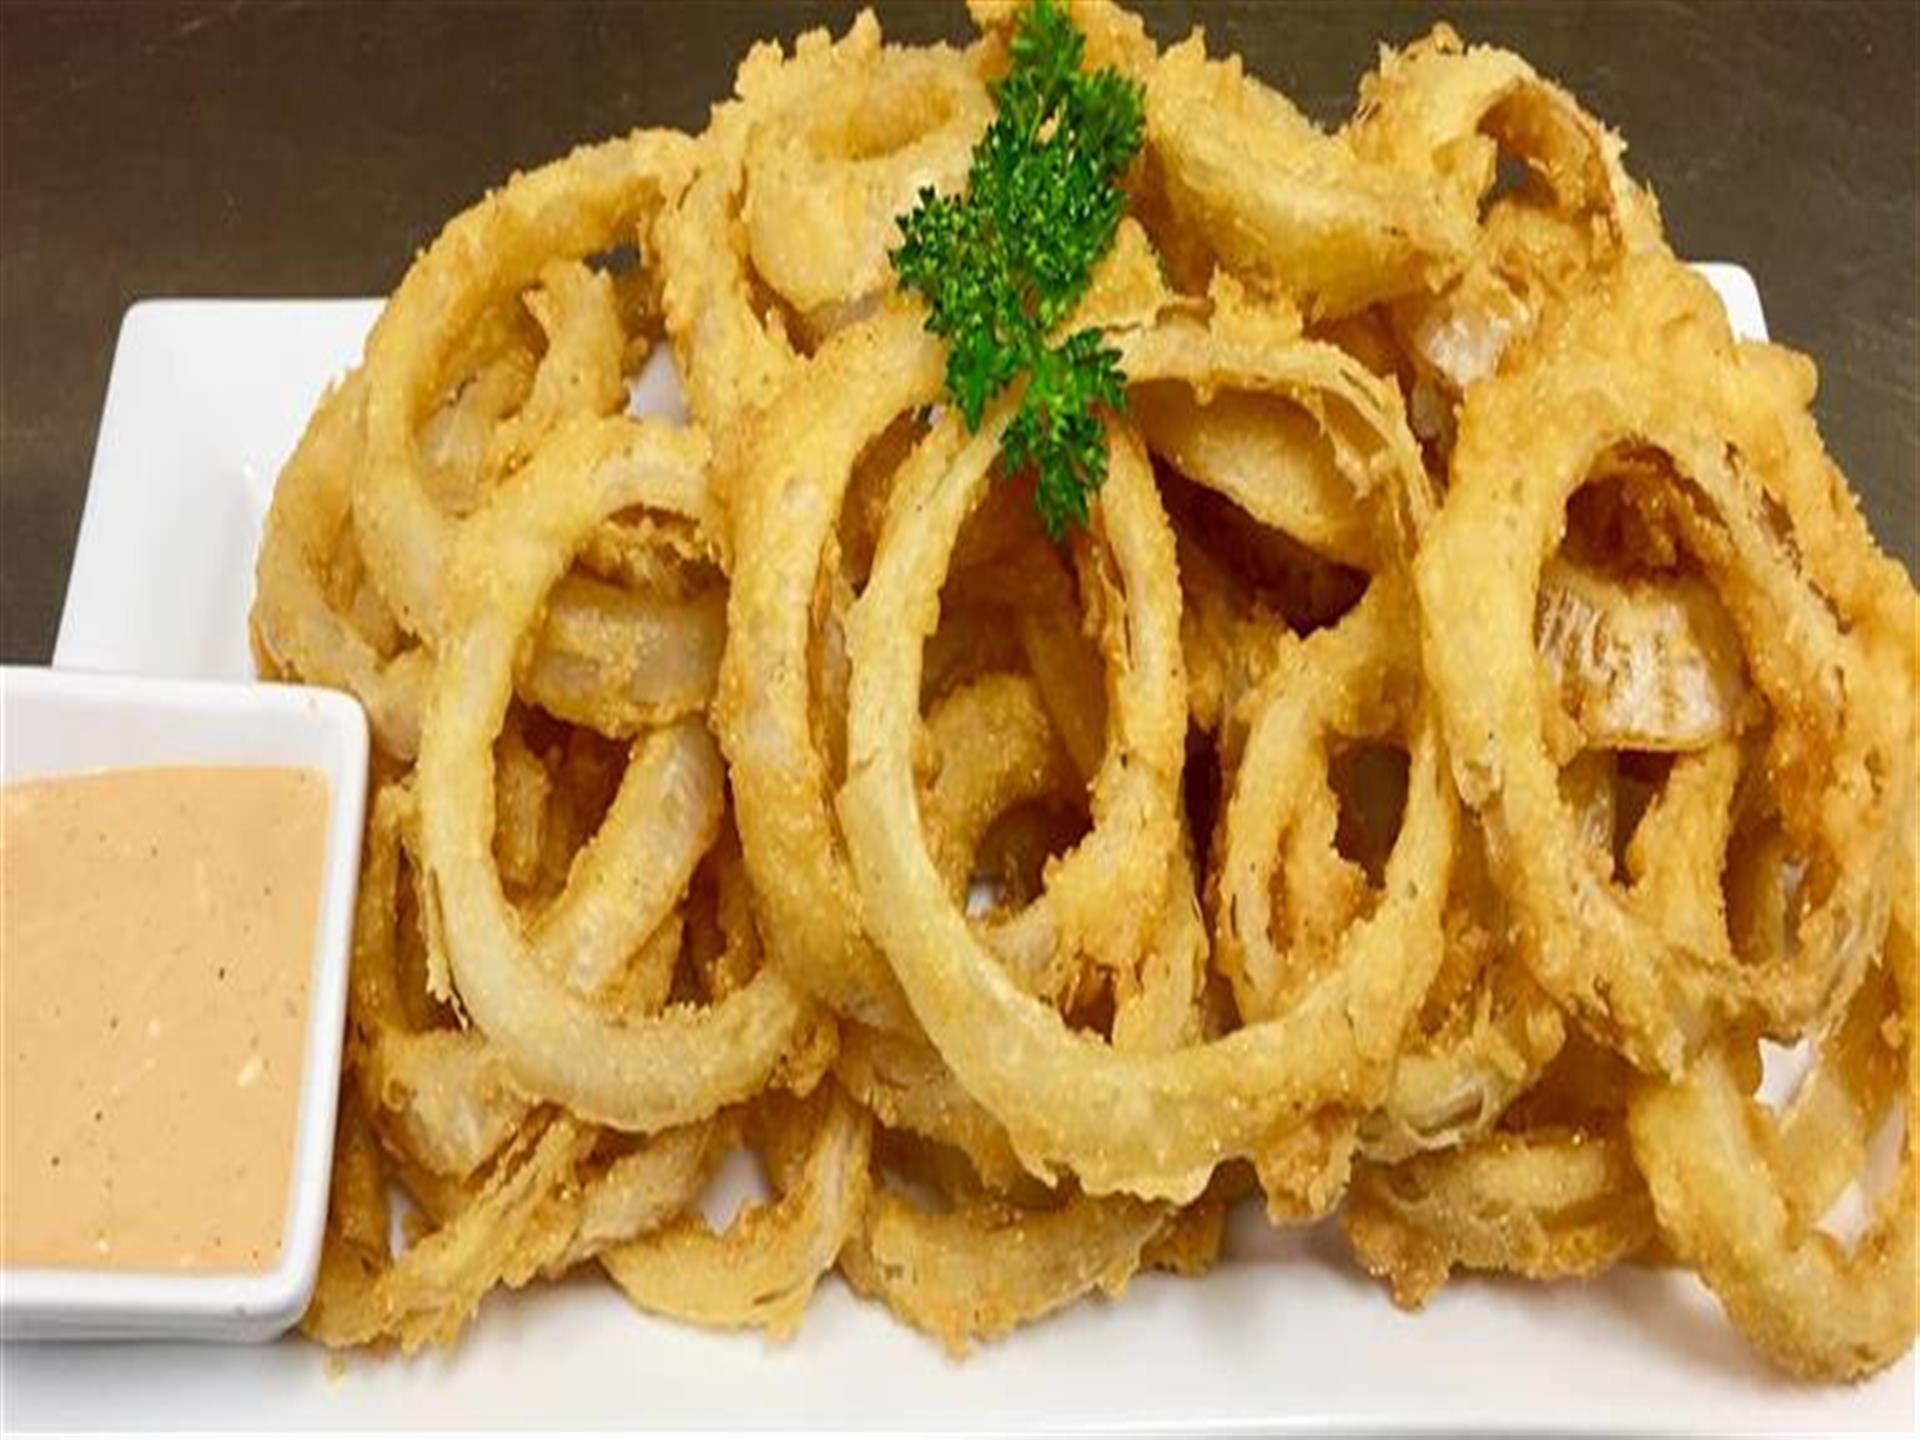 onion rings with dipping sauce